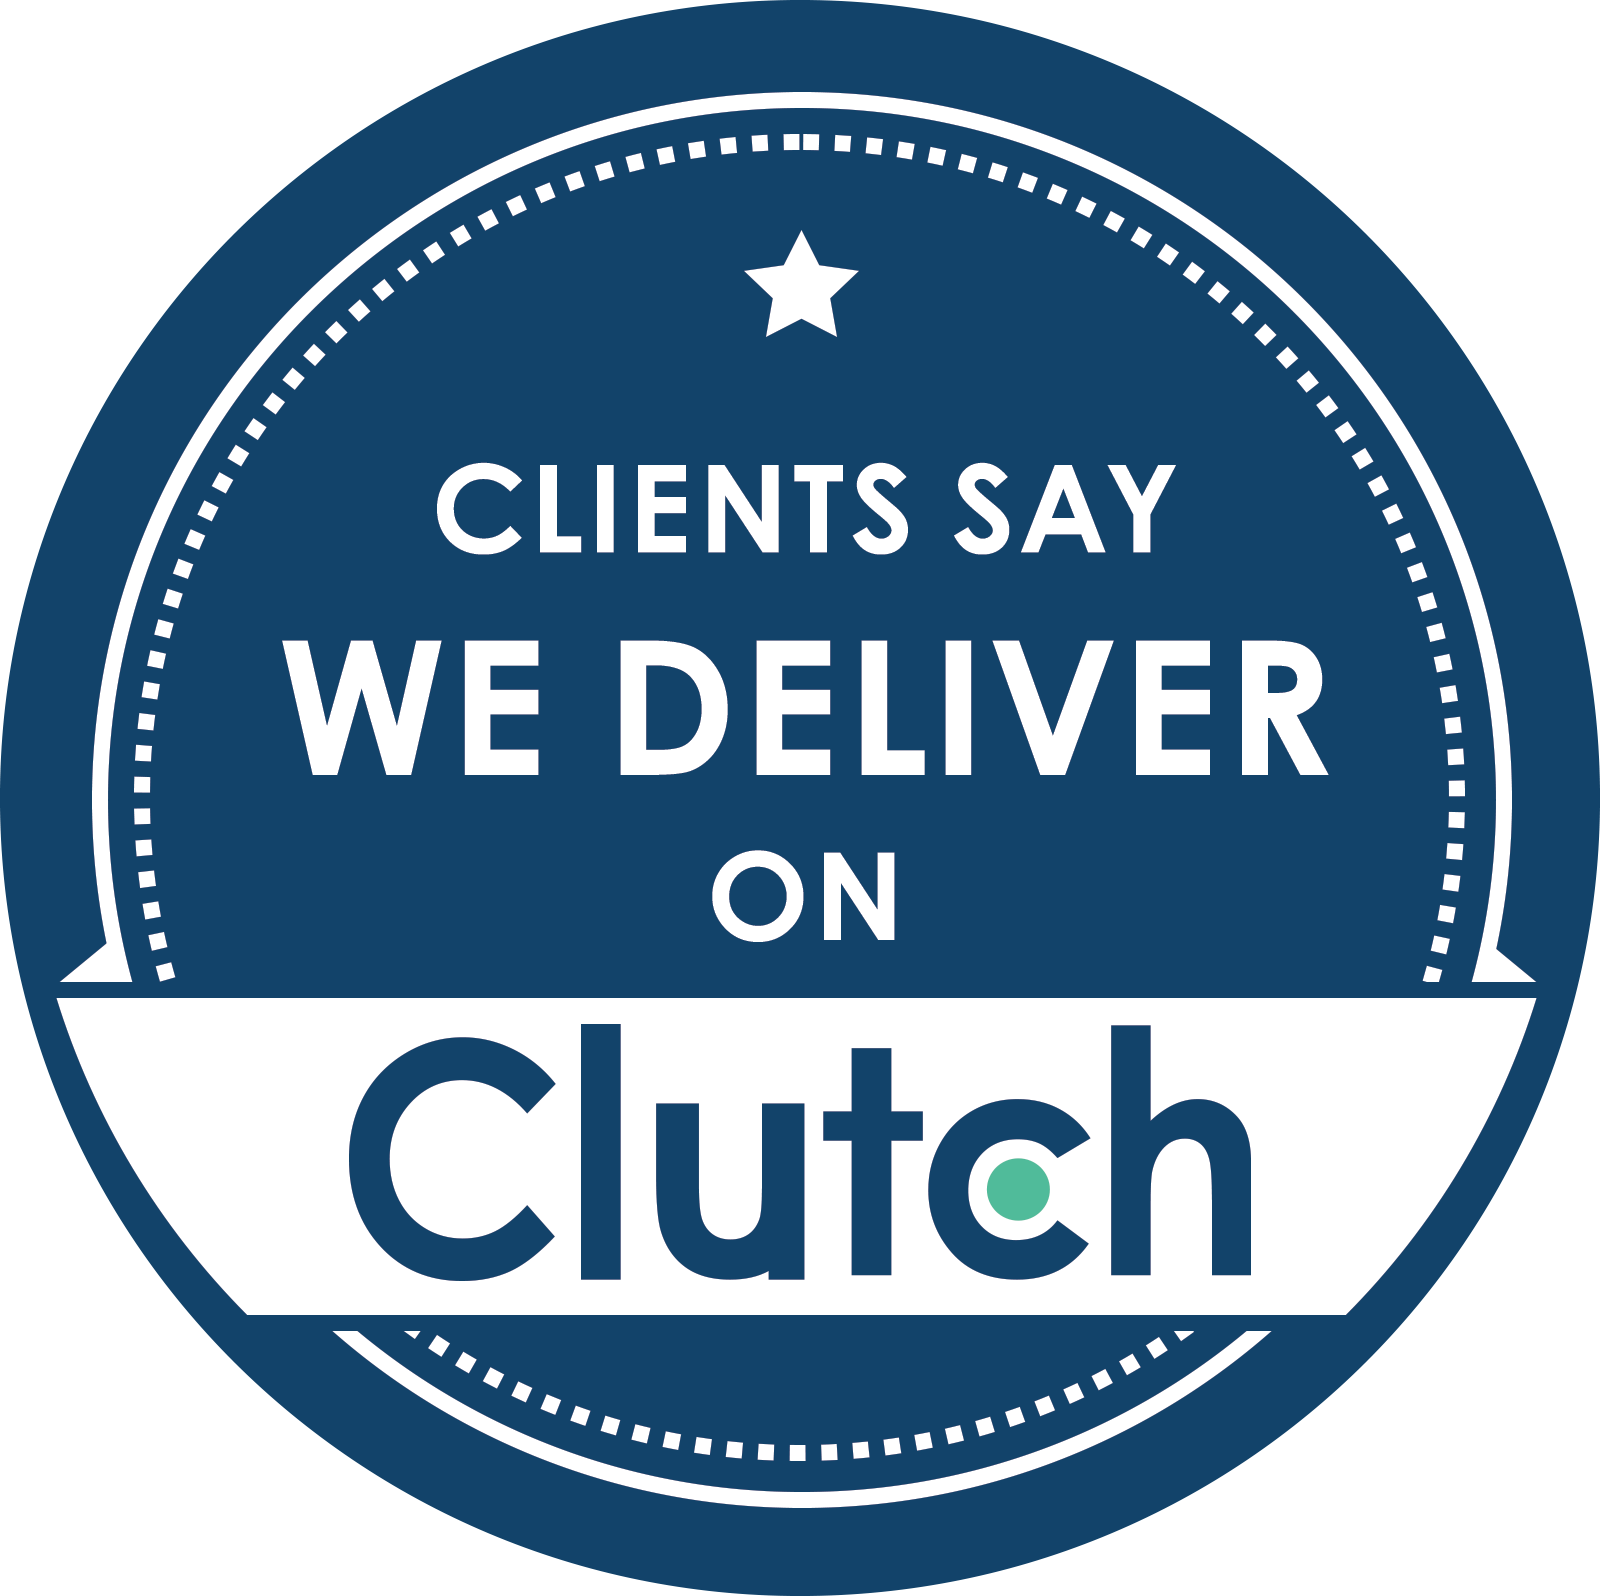 clutch-we-deliver.png